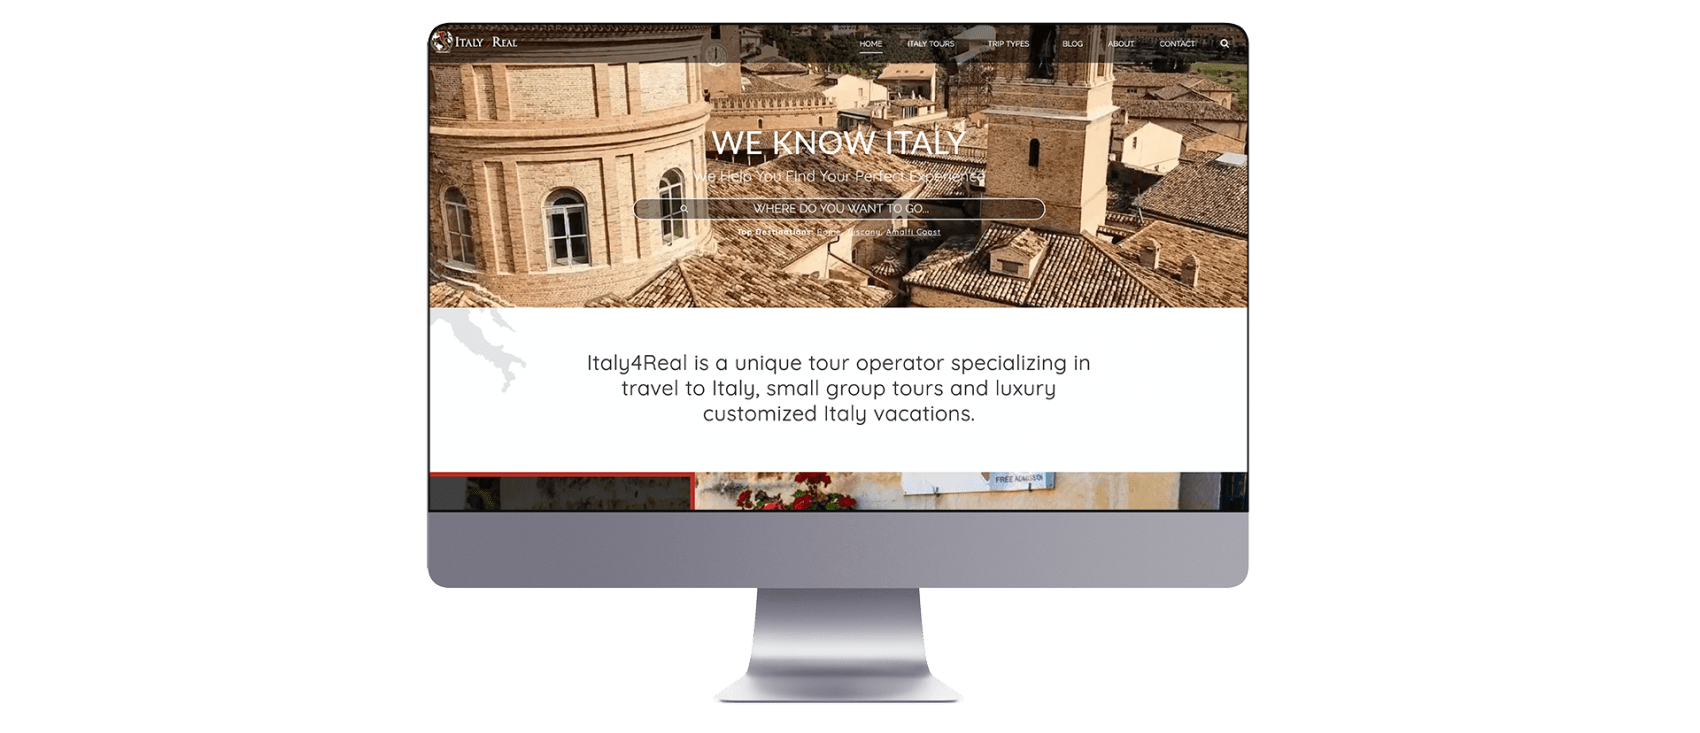 Italy4Real website design on mac